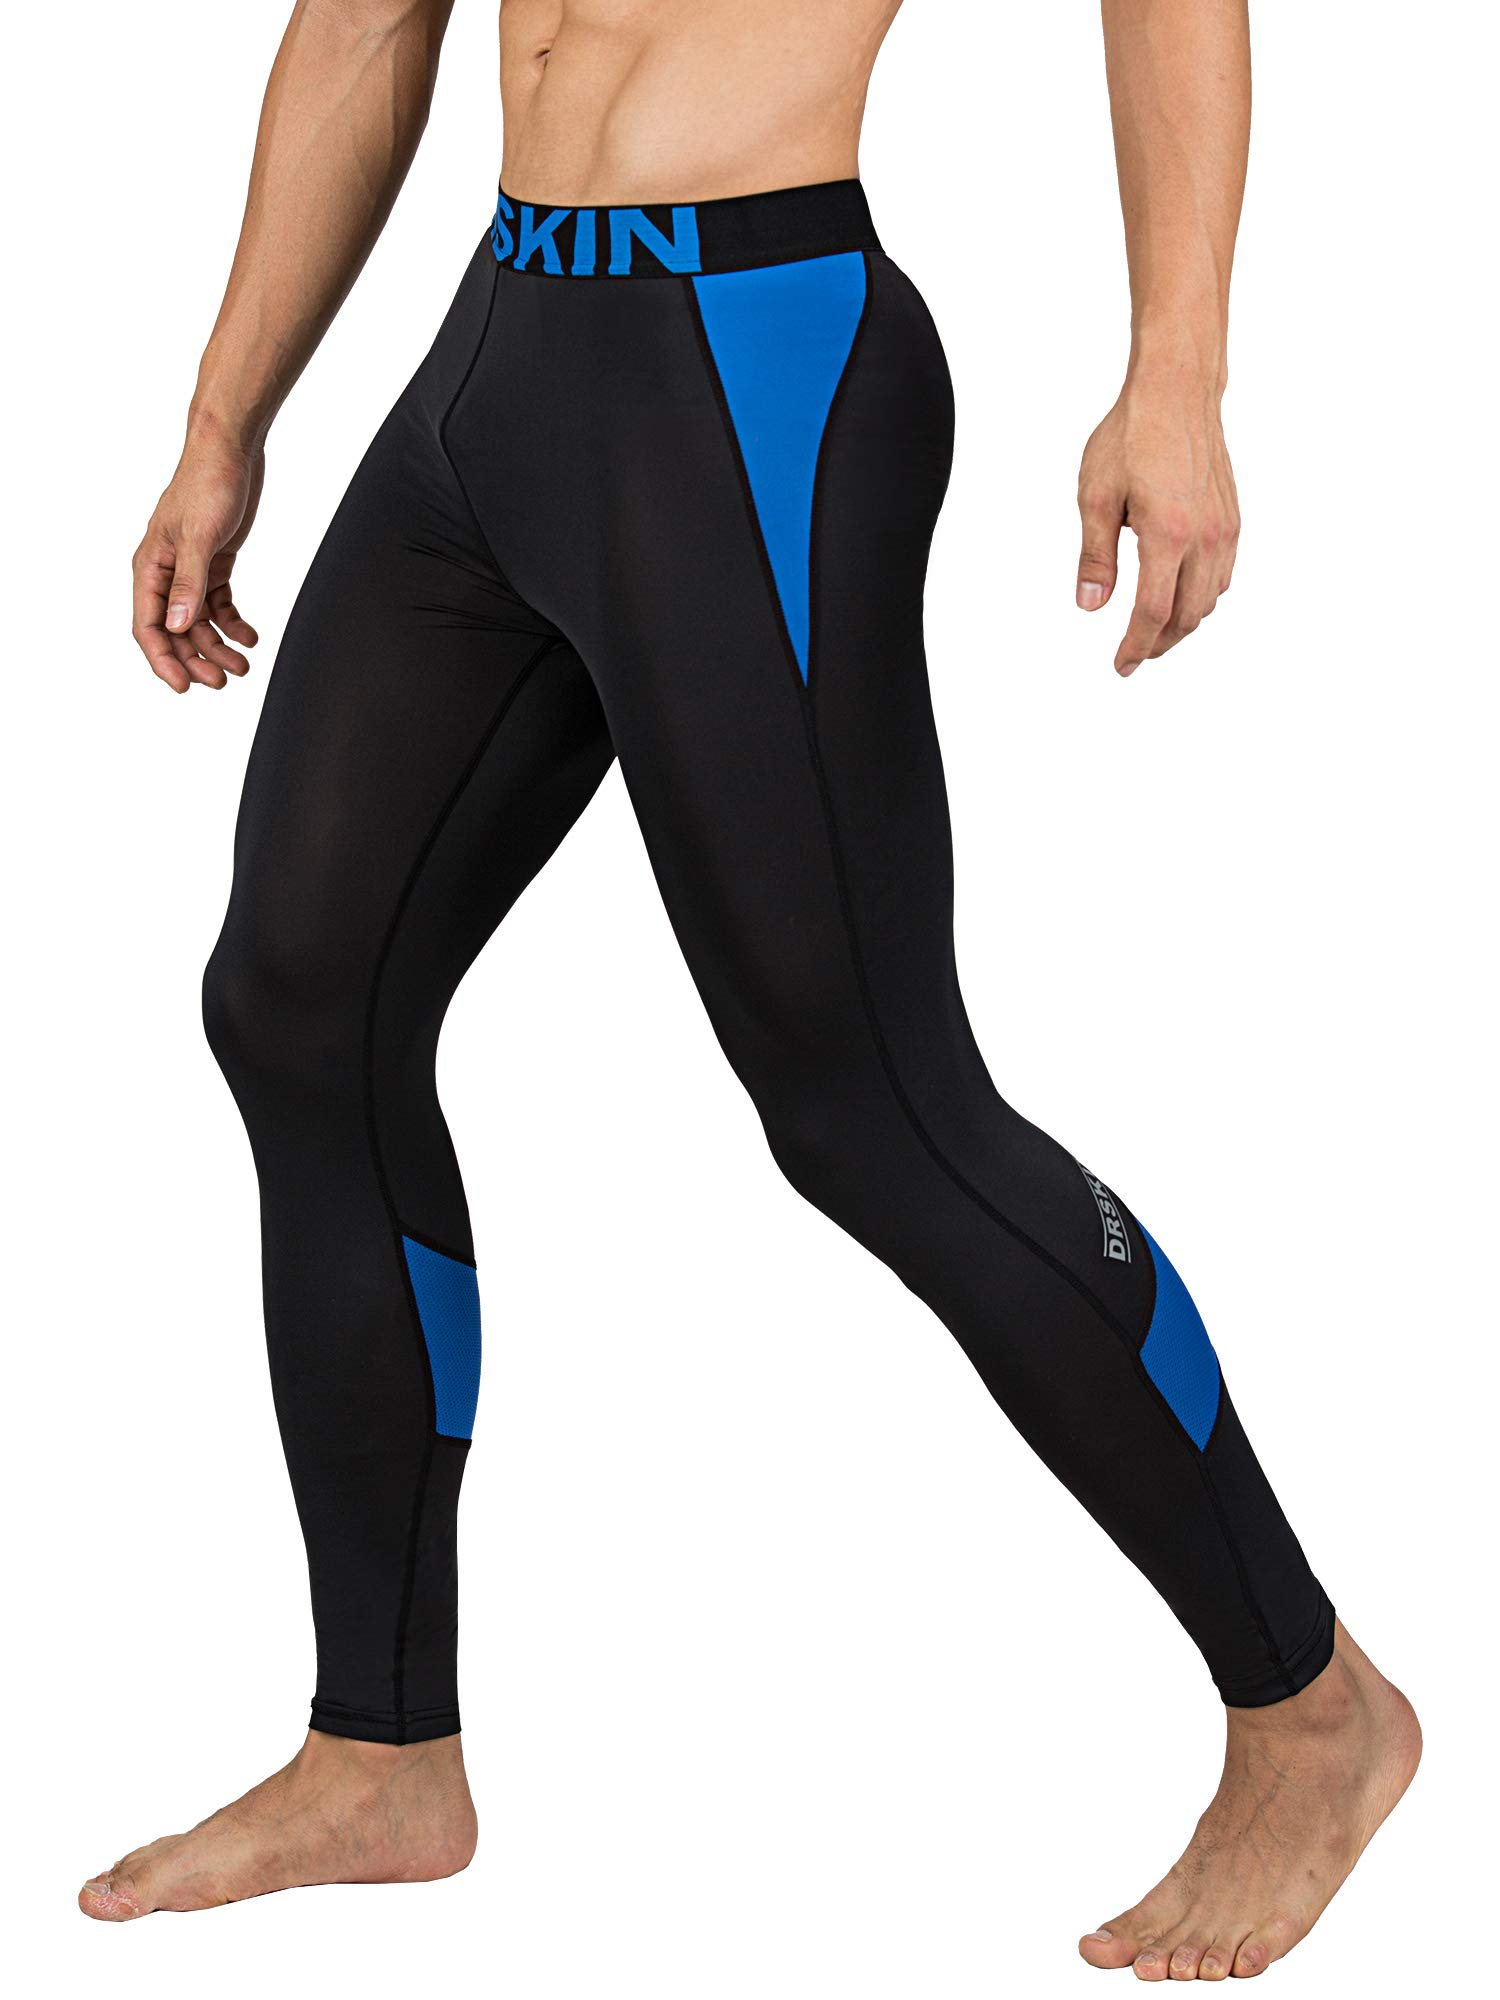 DRSKIN 1~3 Pack Men's Compression Dry Cool Sports Tights Pants Baselayer Running Leggings Yoga (Packs of 1, 2, or 3 Deals) (Came B-BU03, S)